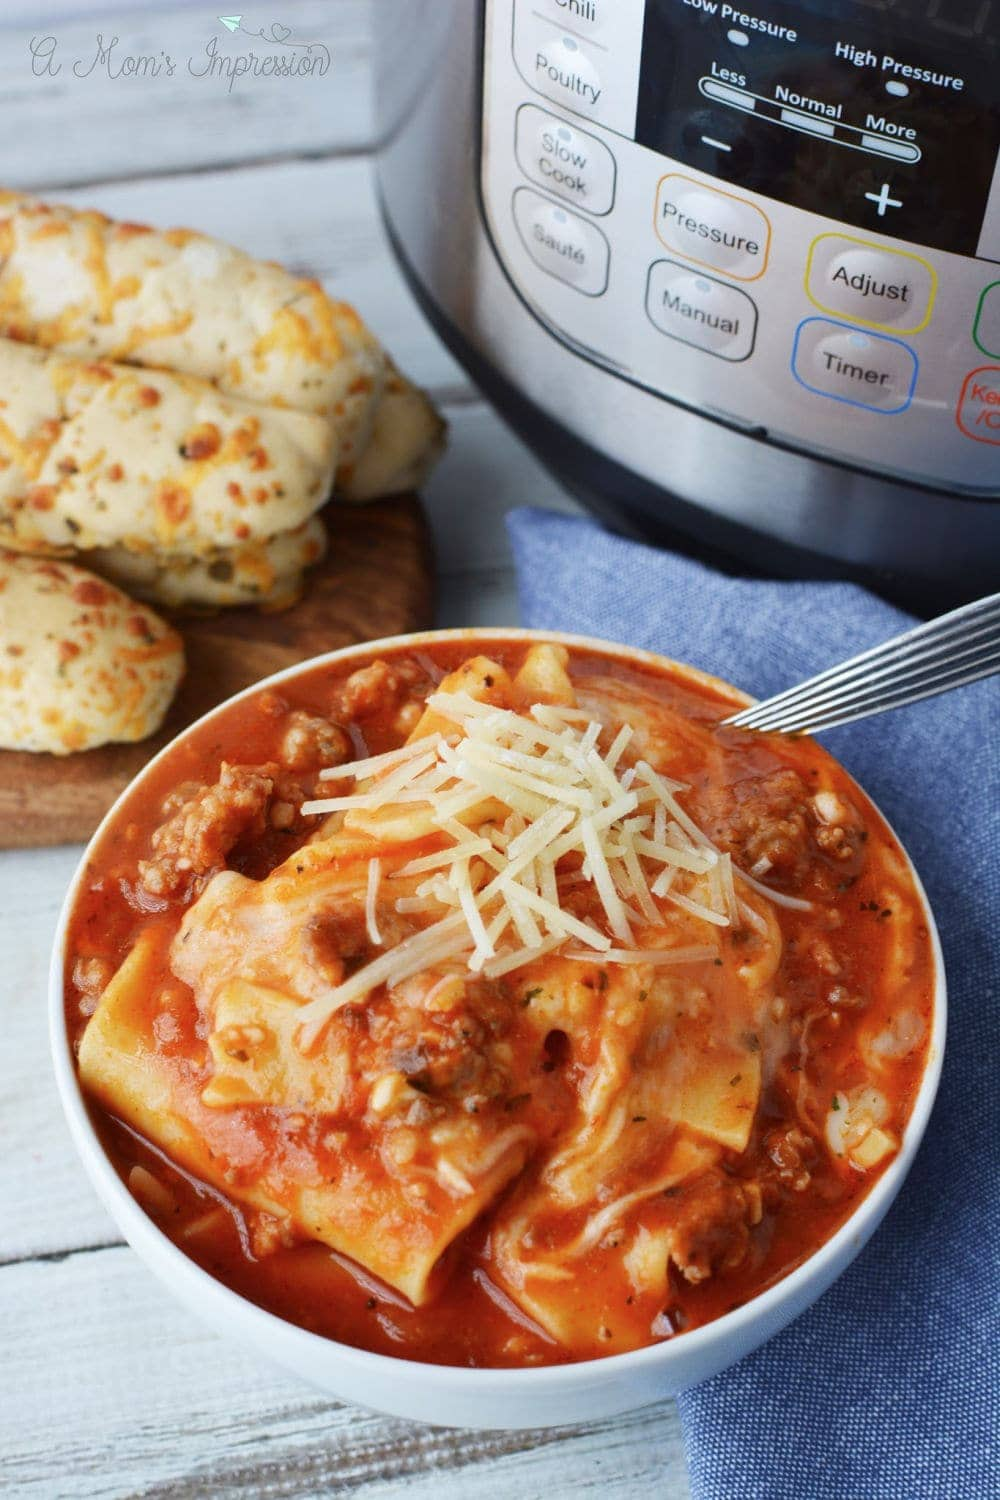 a bowl of Lazy Lasagna sitting in front of a pressure cooker